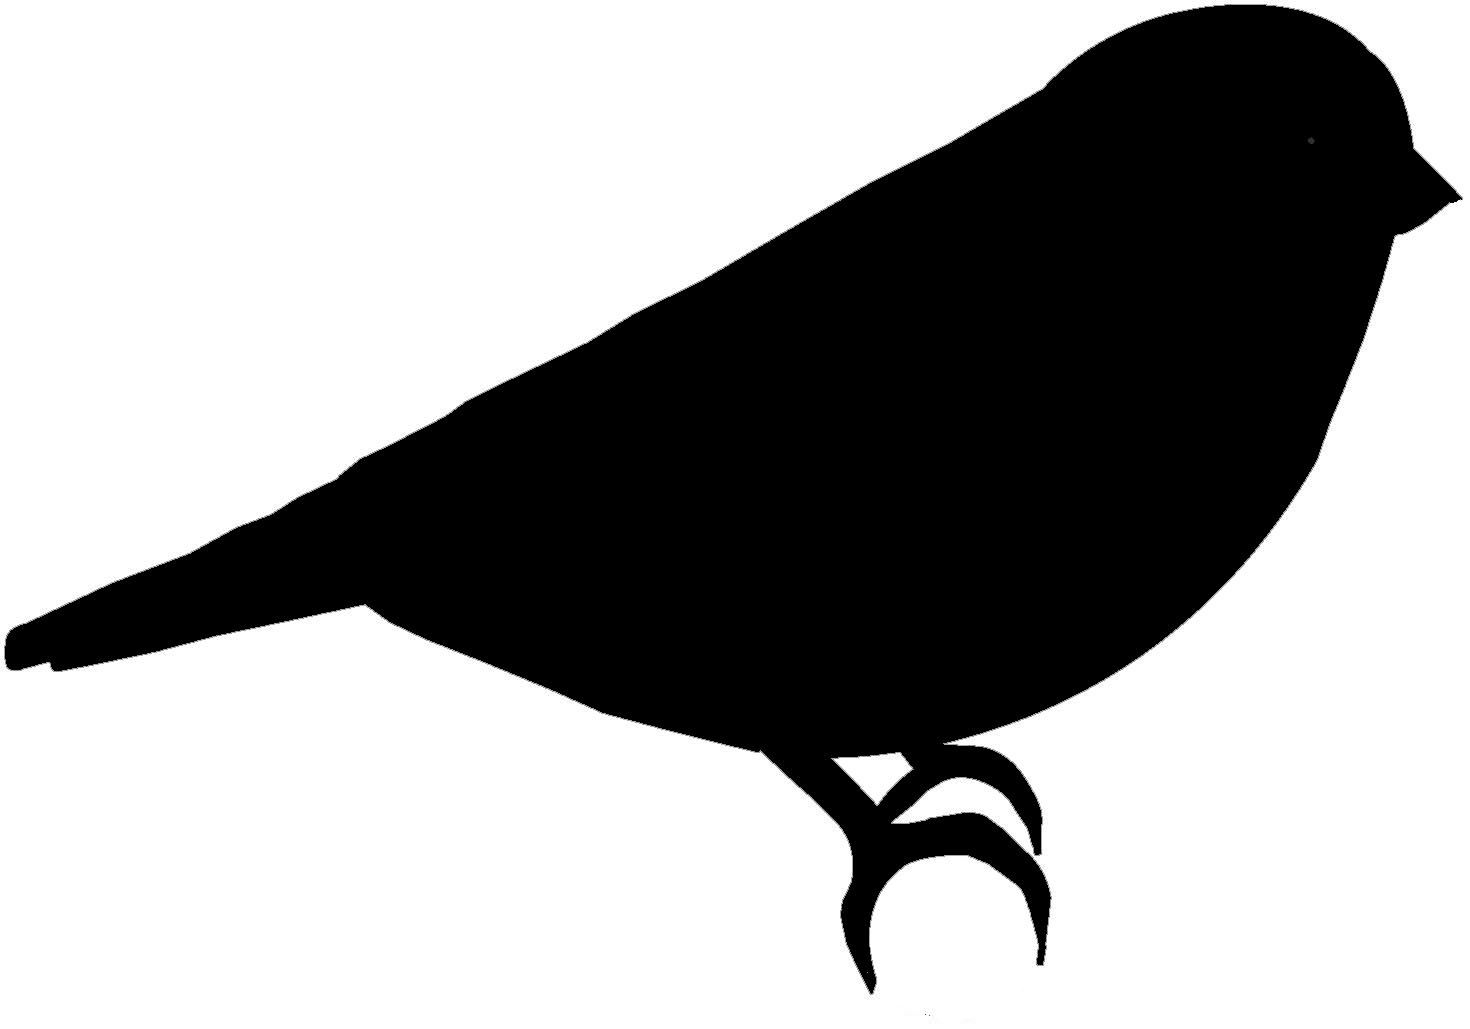 parrot silhouette parrot silhouette at getdrawingscom free for personal silhouette parrot